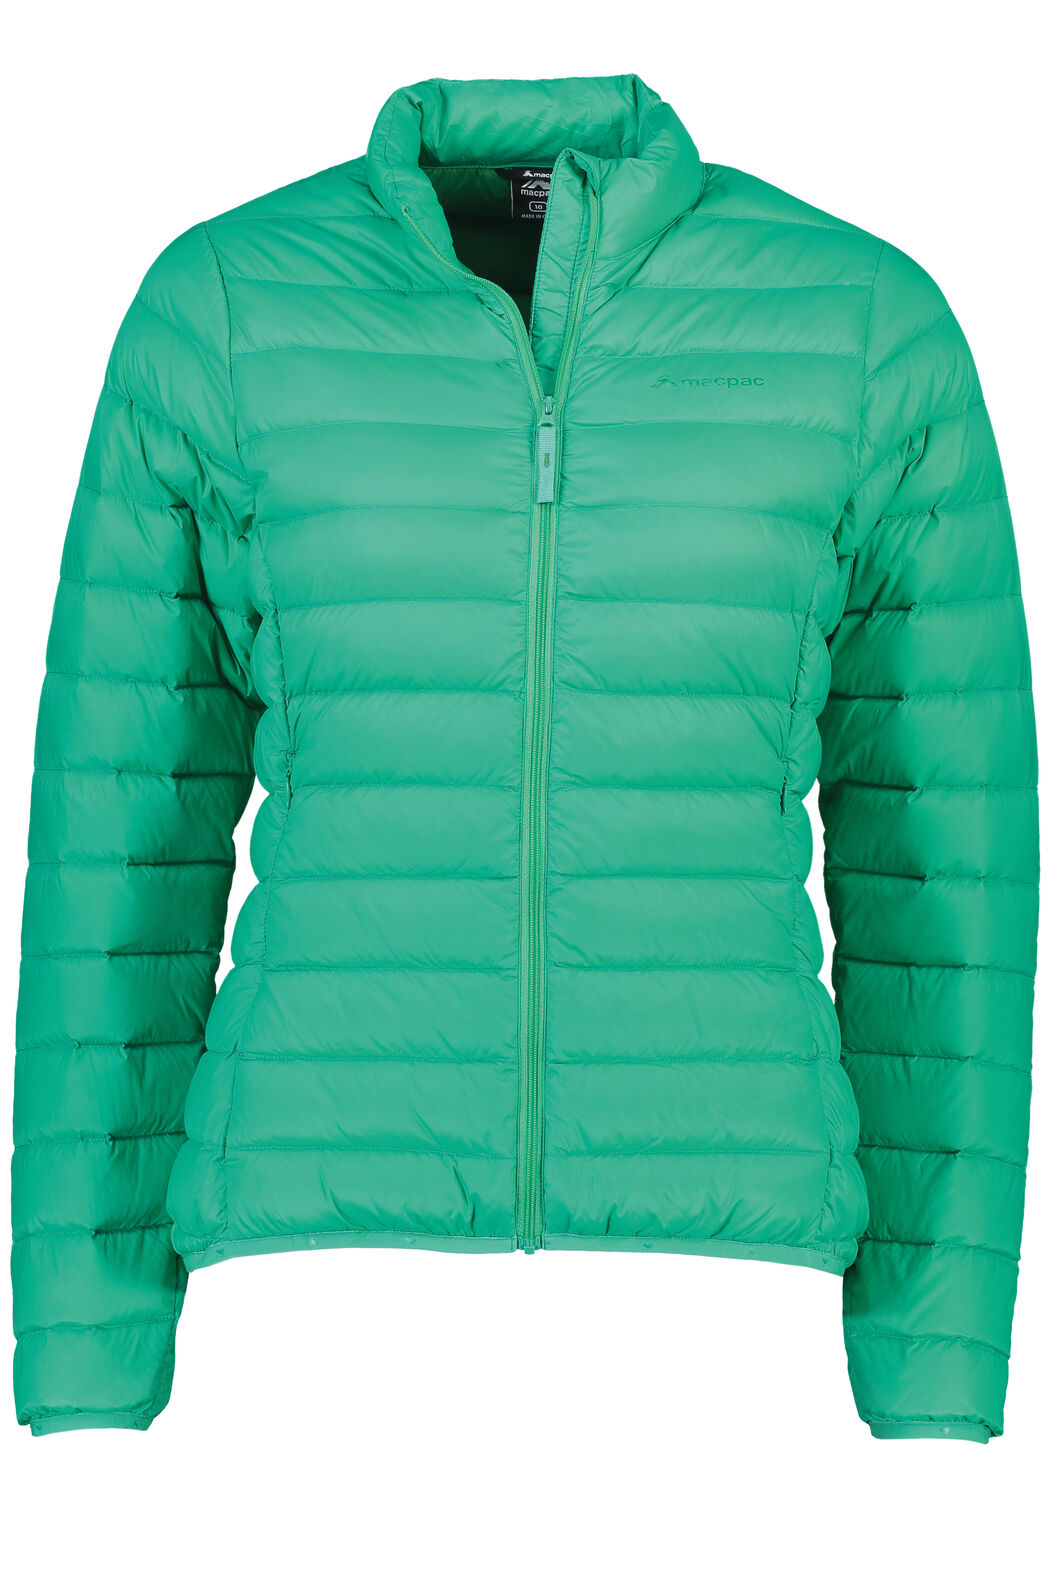 Macpac Uber Light Down Jacket - Women's, Deep Green, hi-res